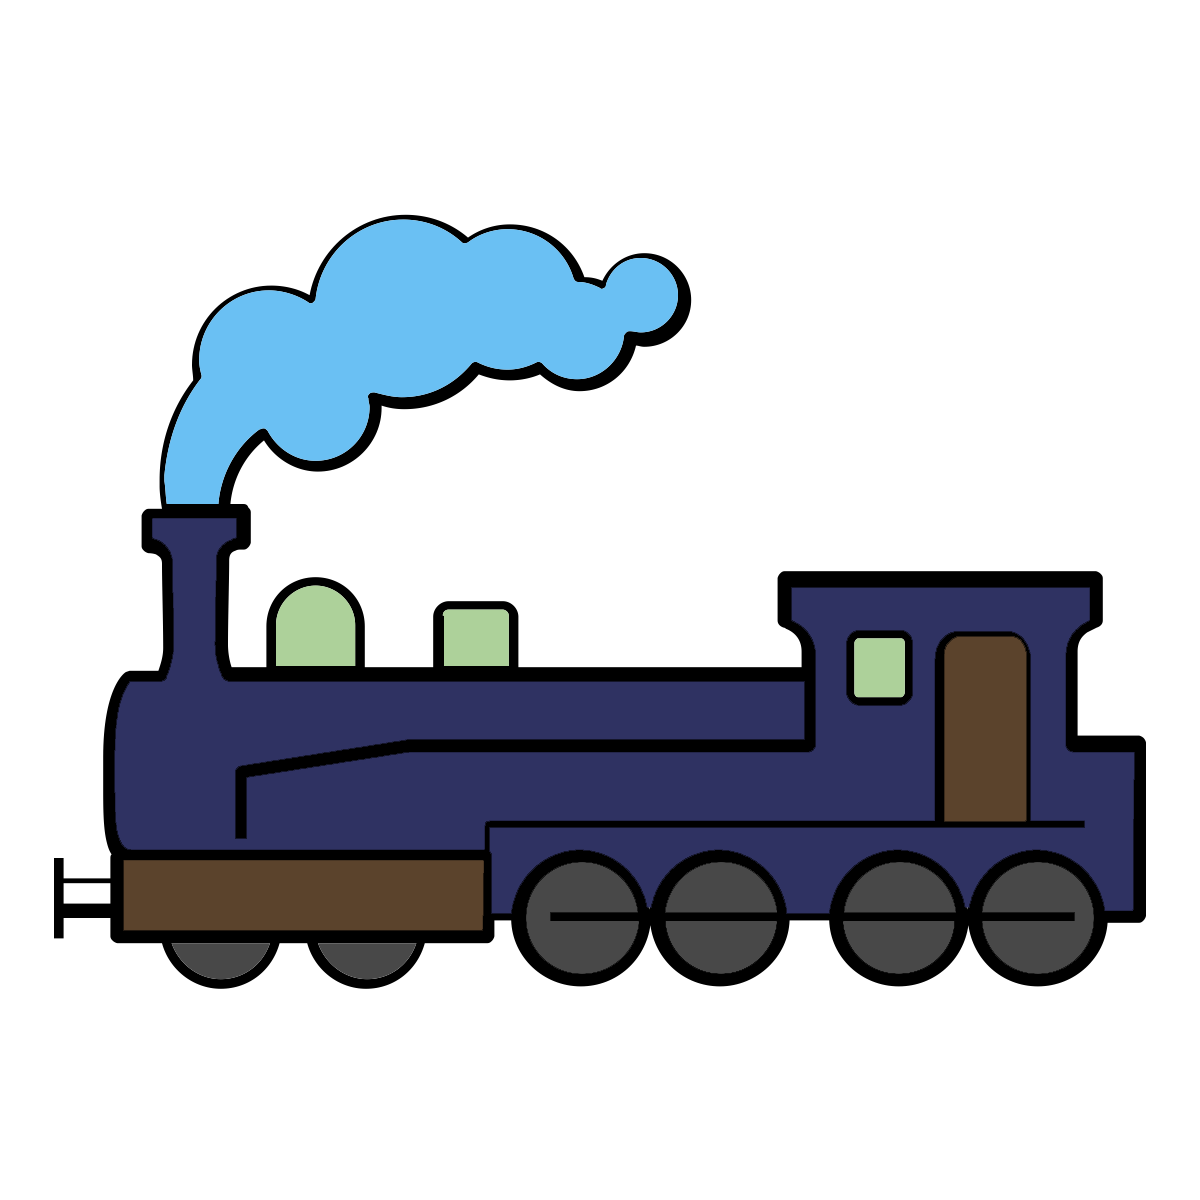 noun_locomotive_1614731_000000.png